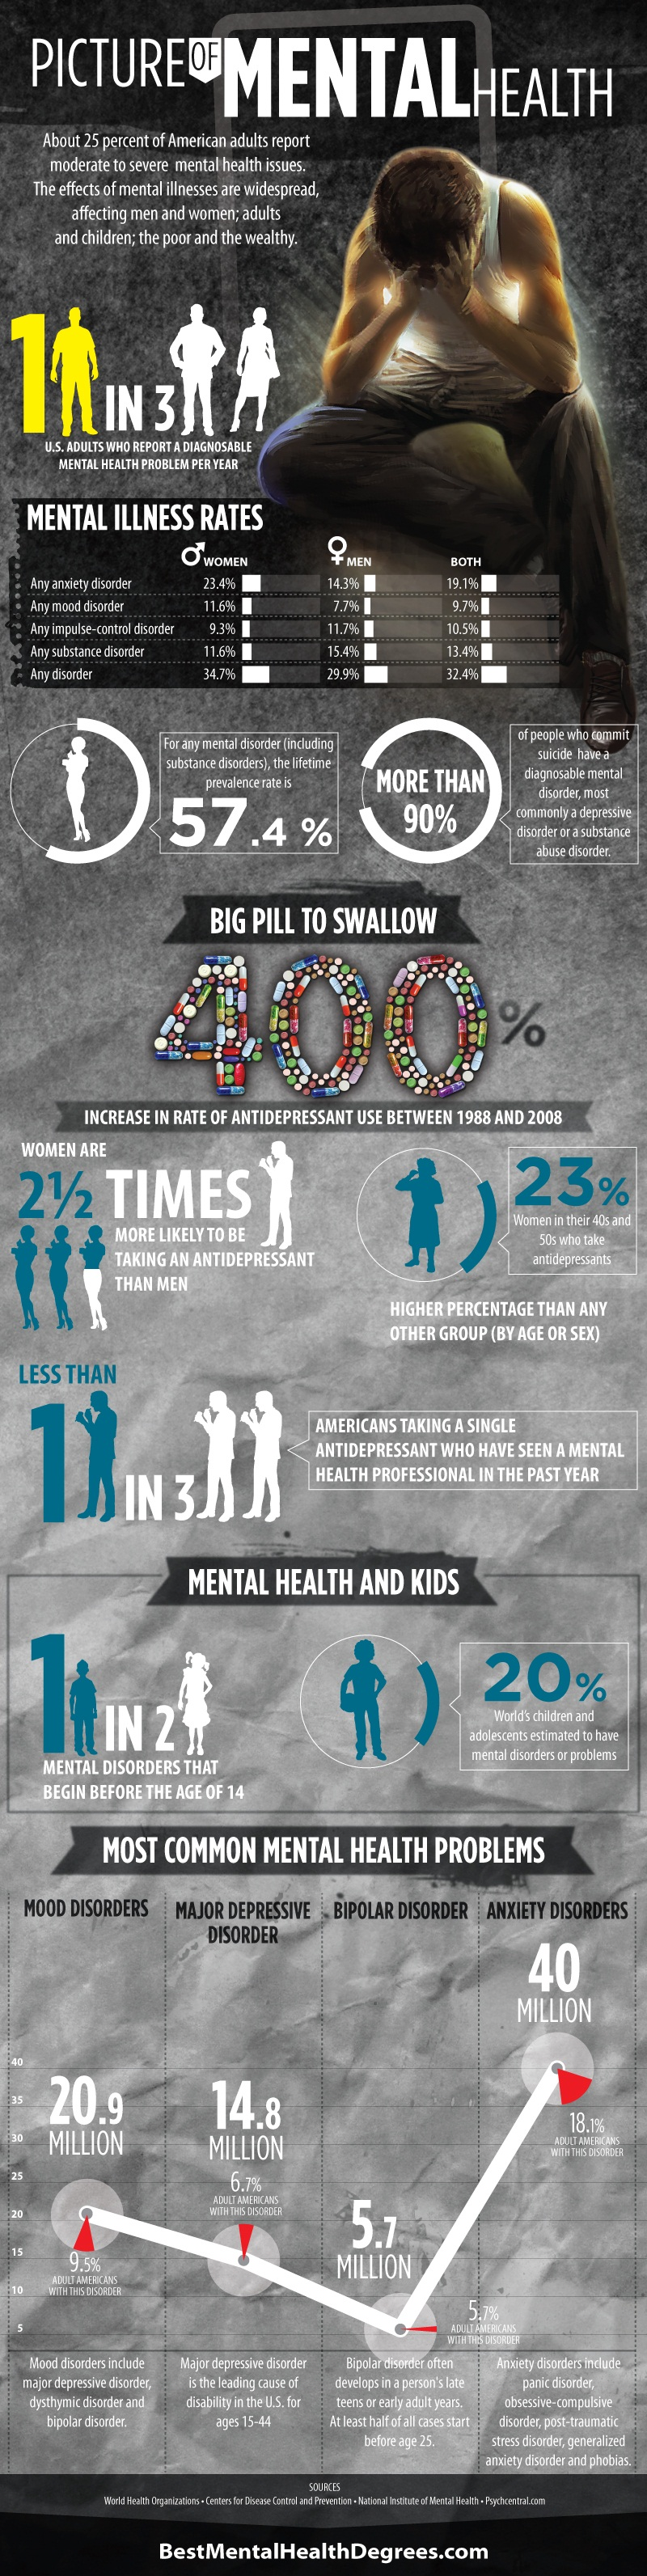 picture-of-mental-health_504f58bcbc18f